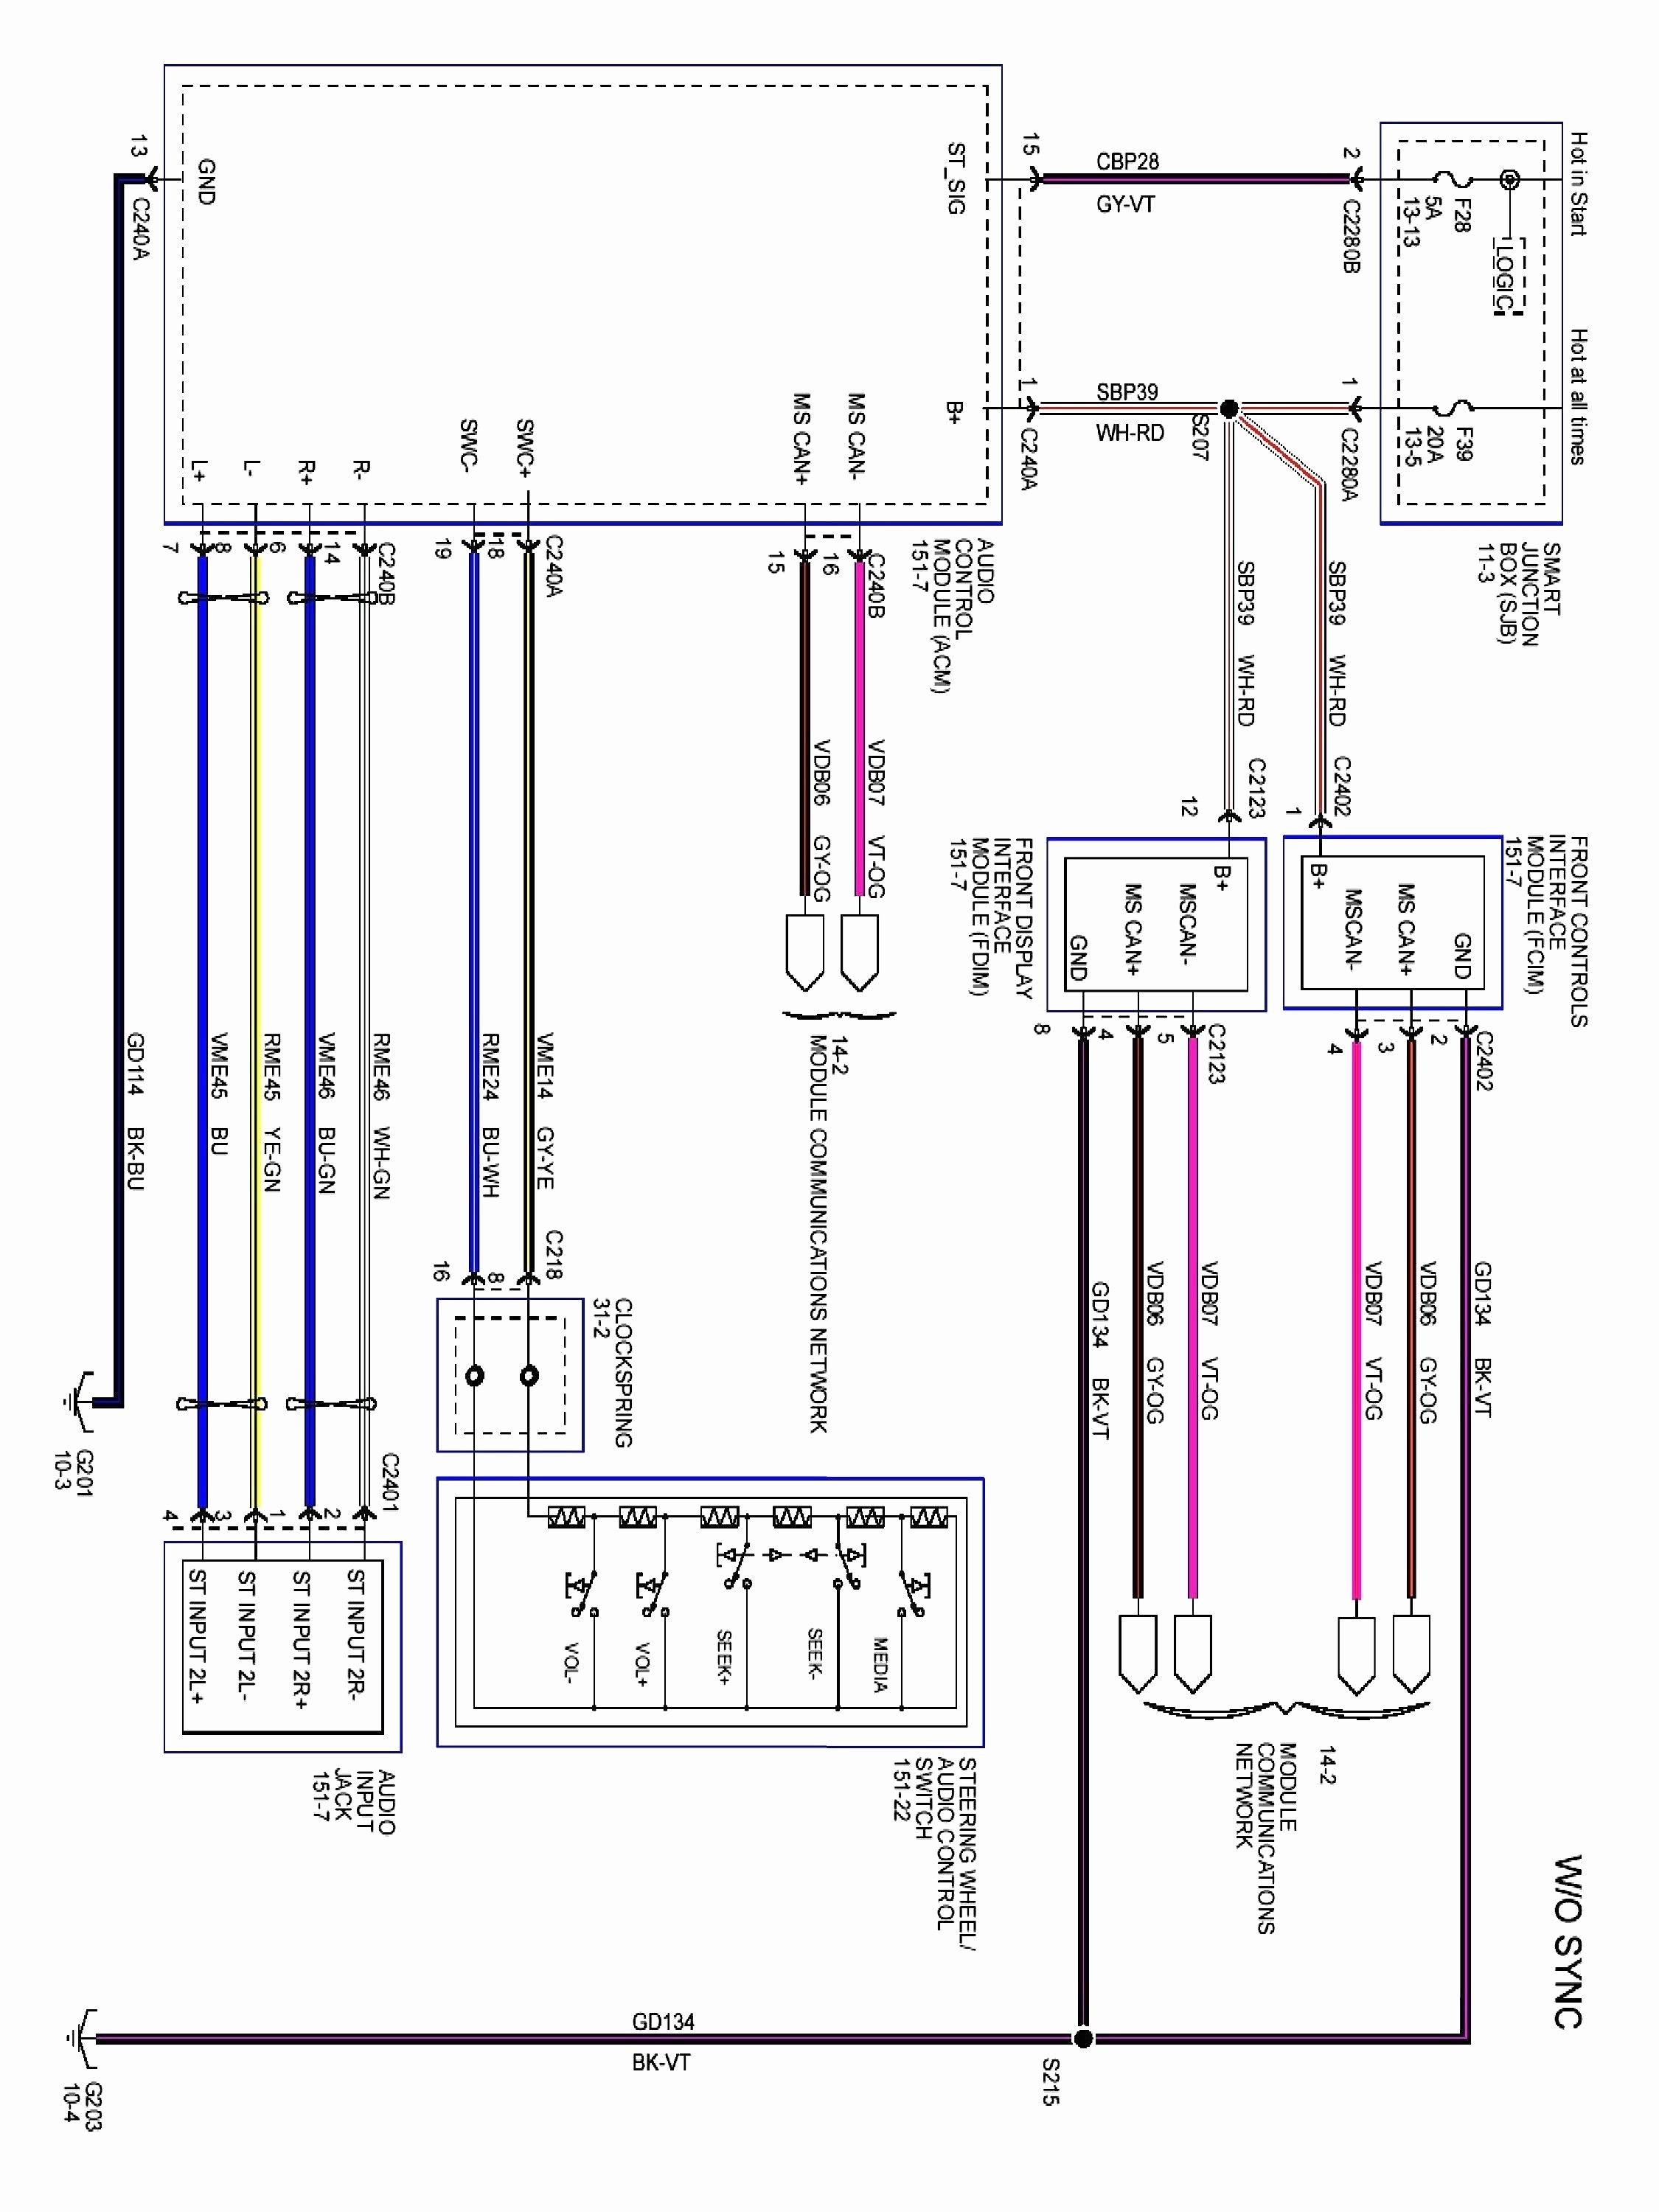 Structured Wiring Diagram | Free Wiring Diagram